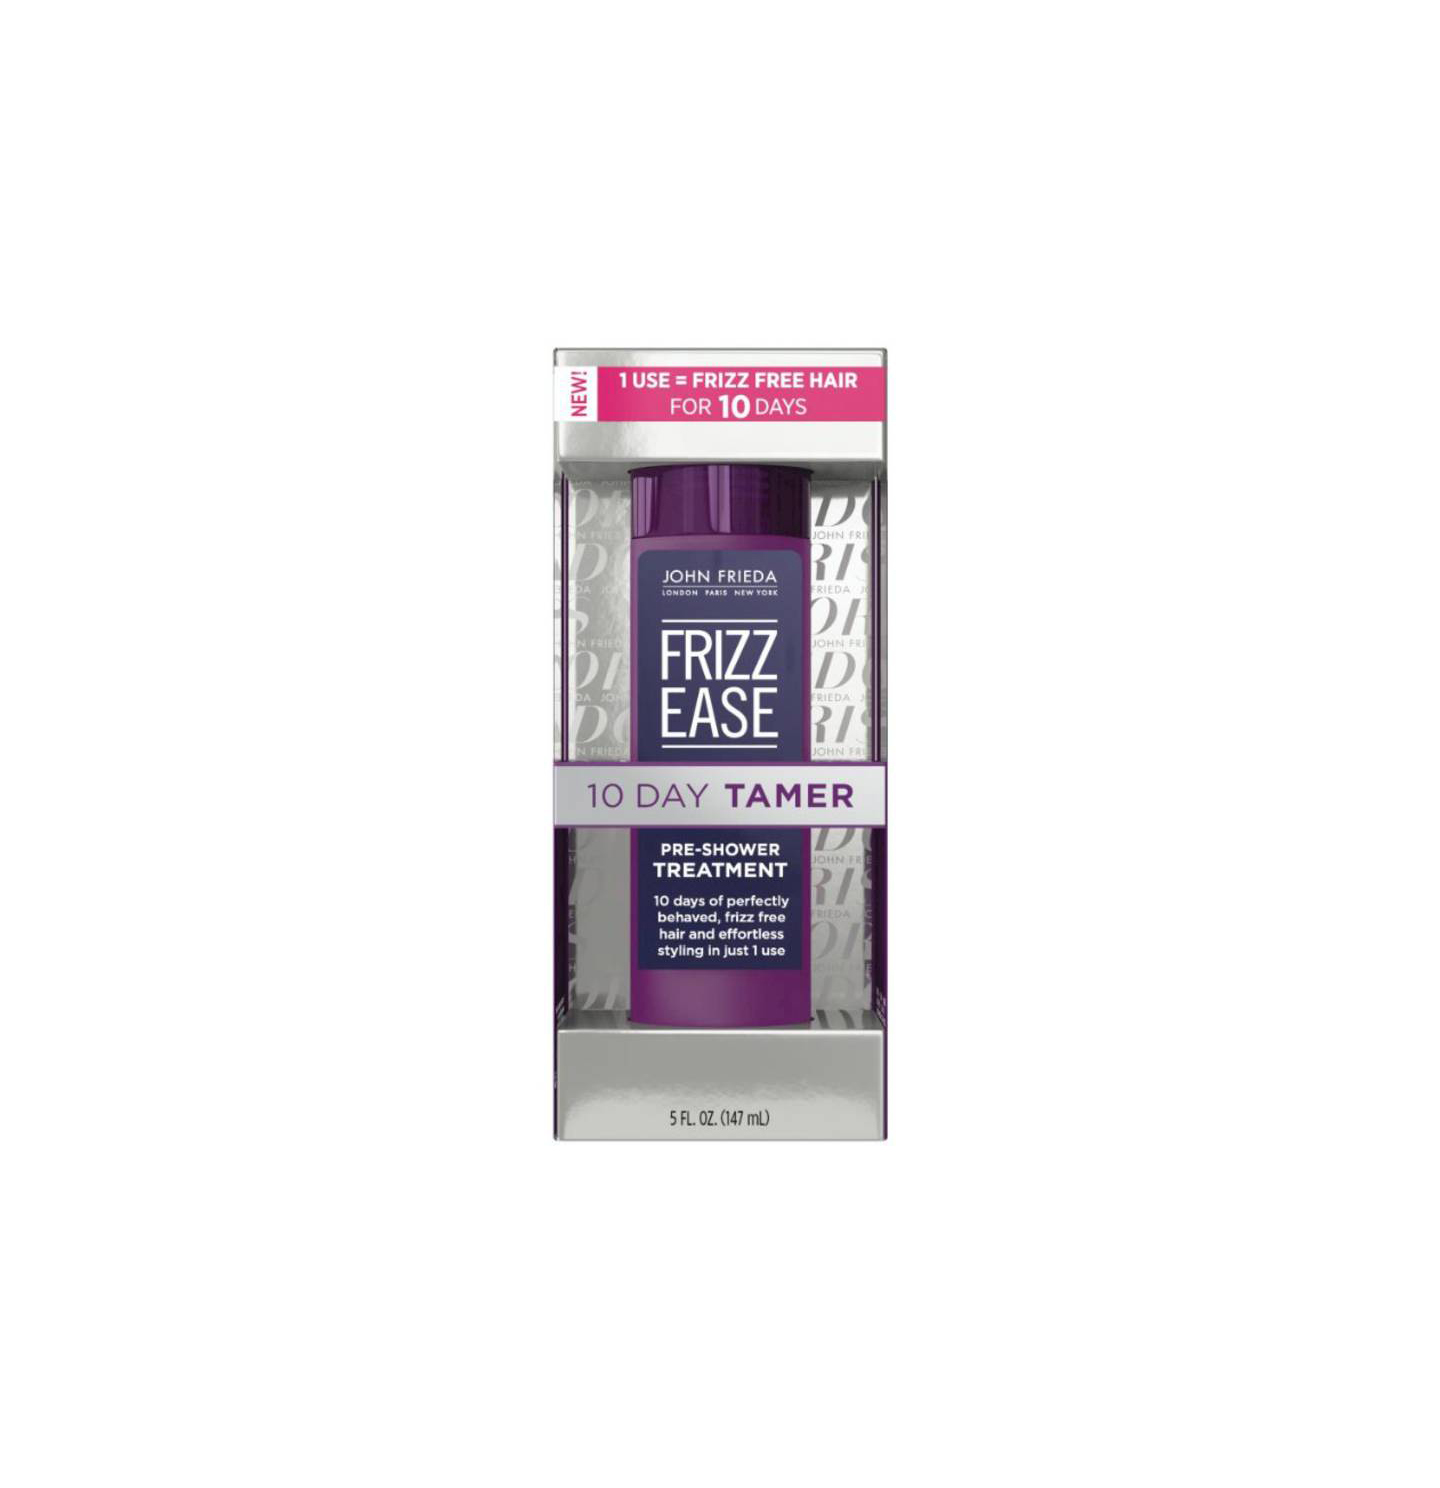 John Frieda Frizz Ease 10-Day Tamer